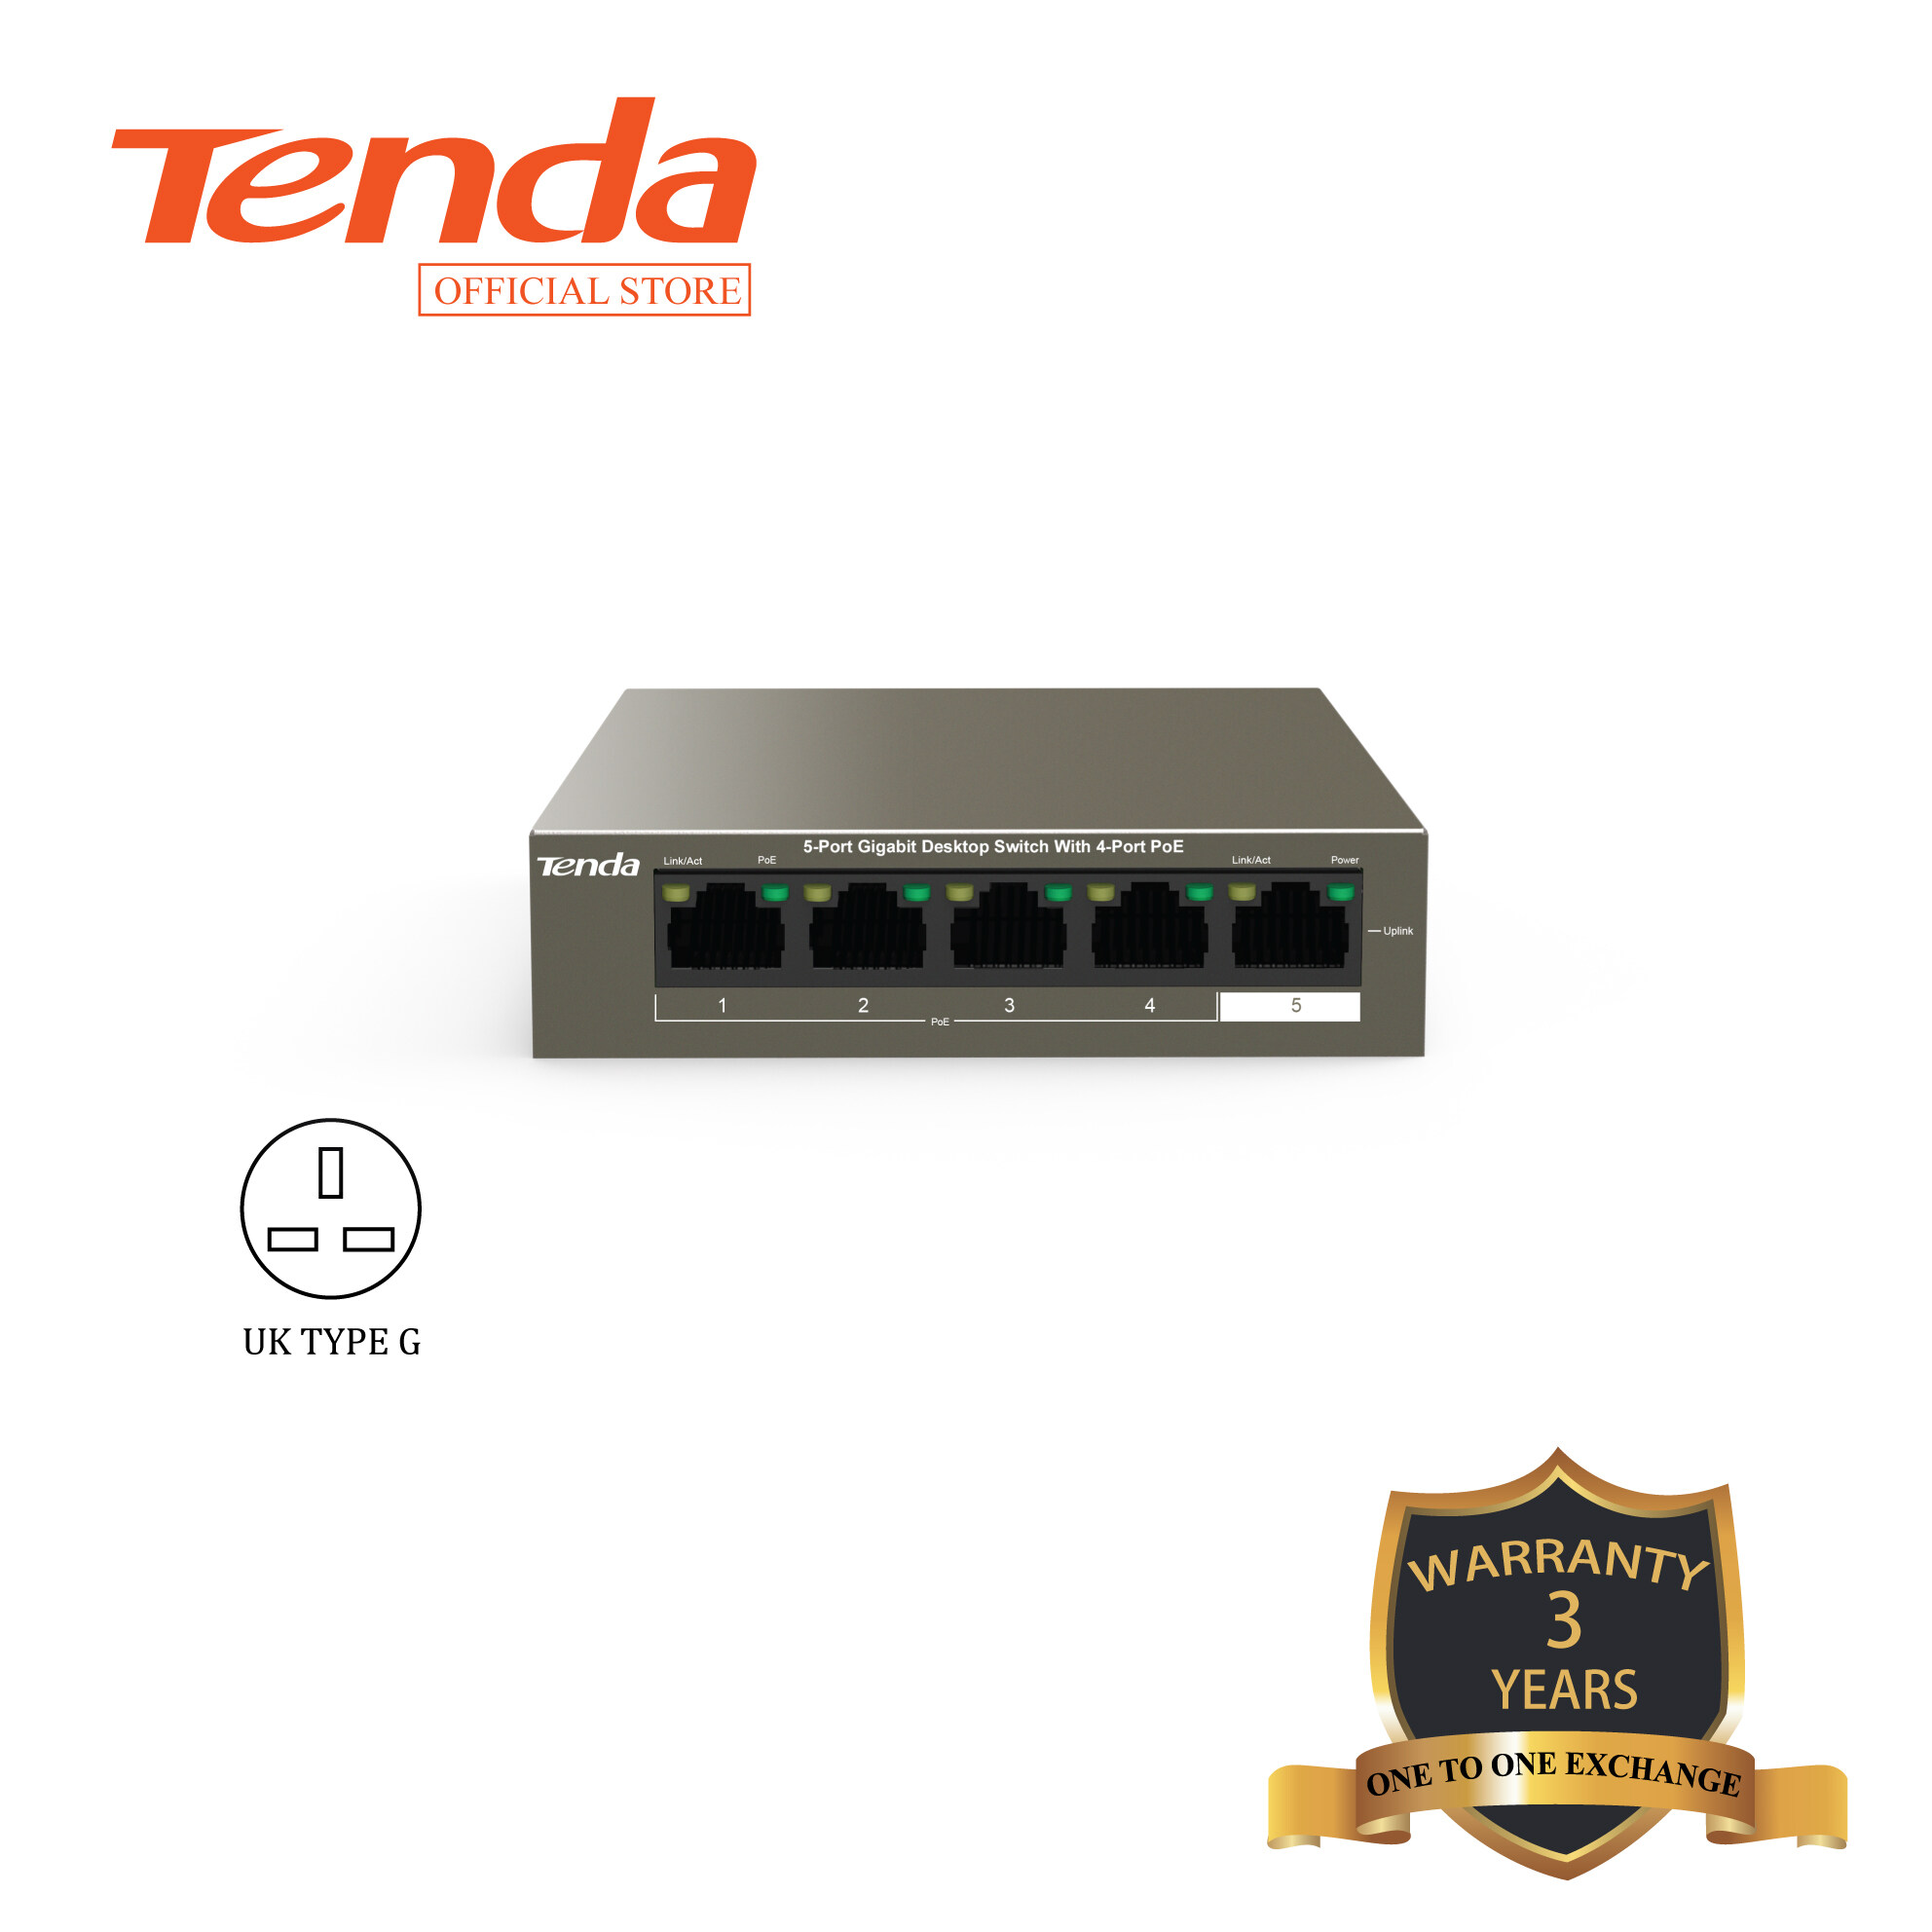 Tenda TEG1105P-4-63W 5-Port Gigabit Desktop Switch with 4-Port PoE